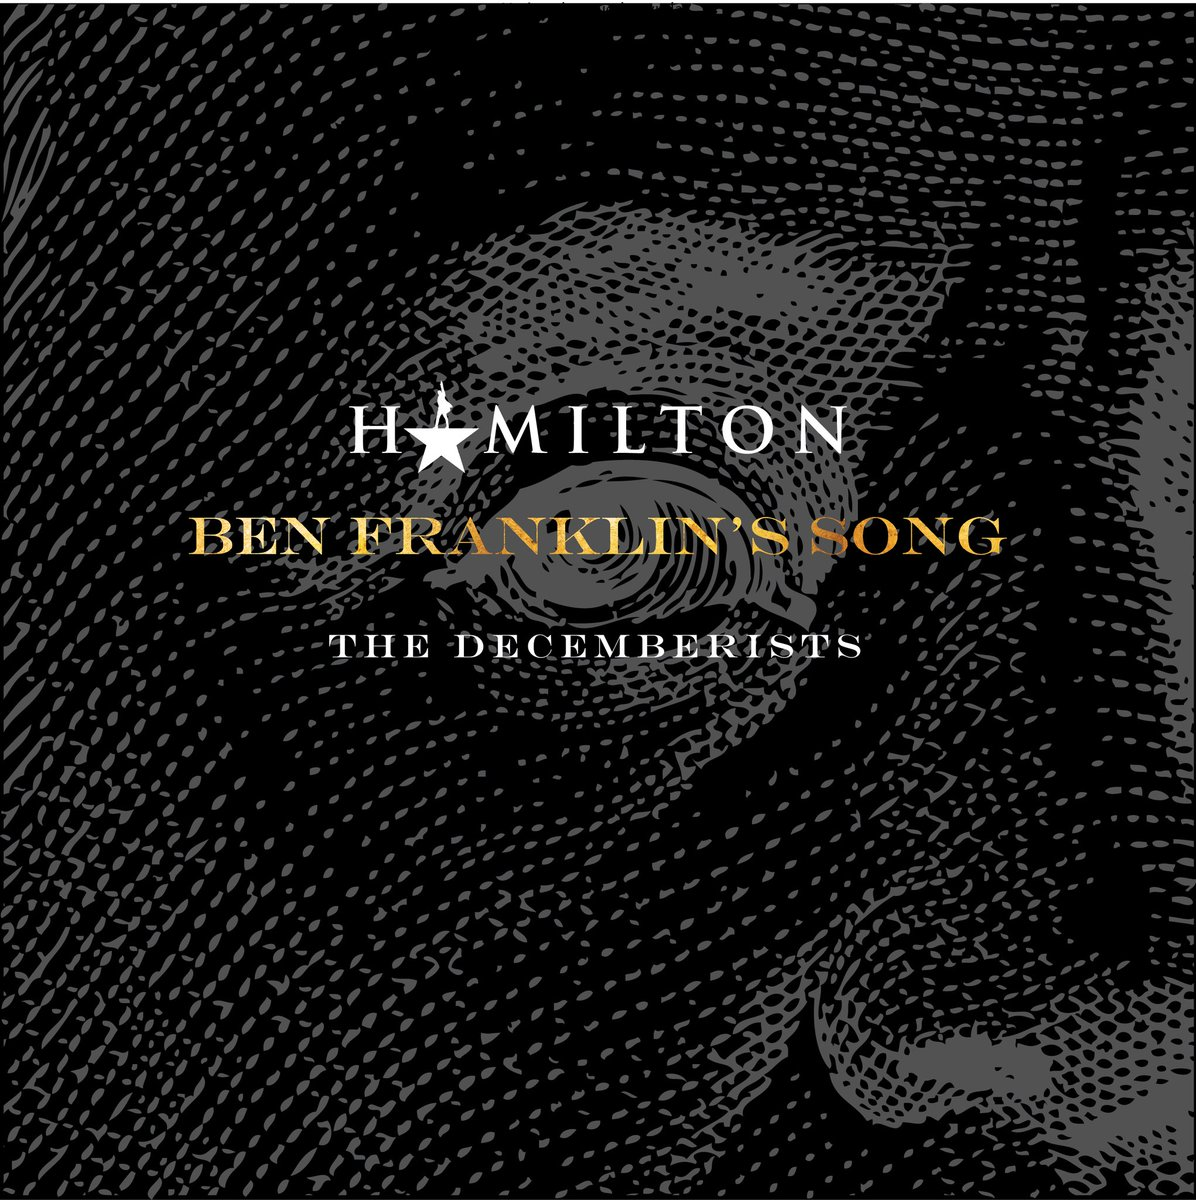 dralgn9xcaeexk7 Lin Manuel Miranda taps The Decemberists for unused Hamilton song Ben Franklins Song: Stream